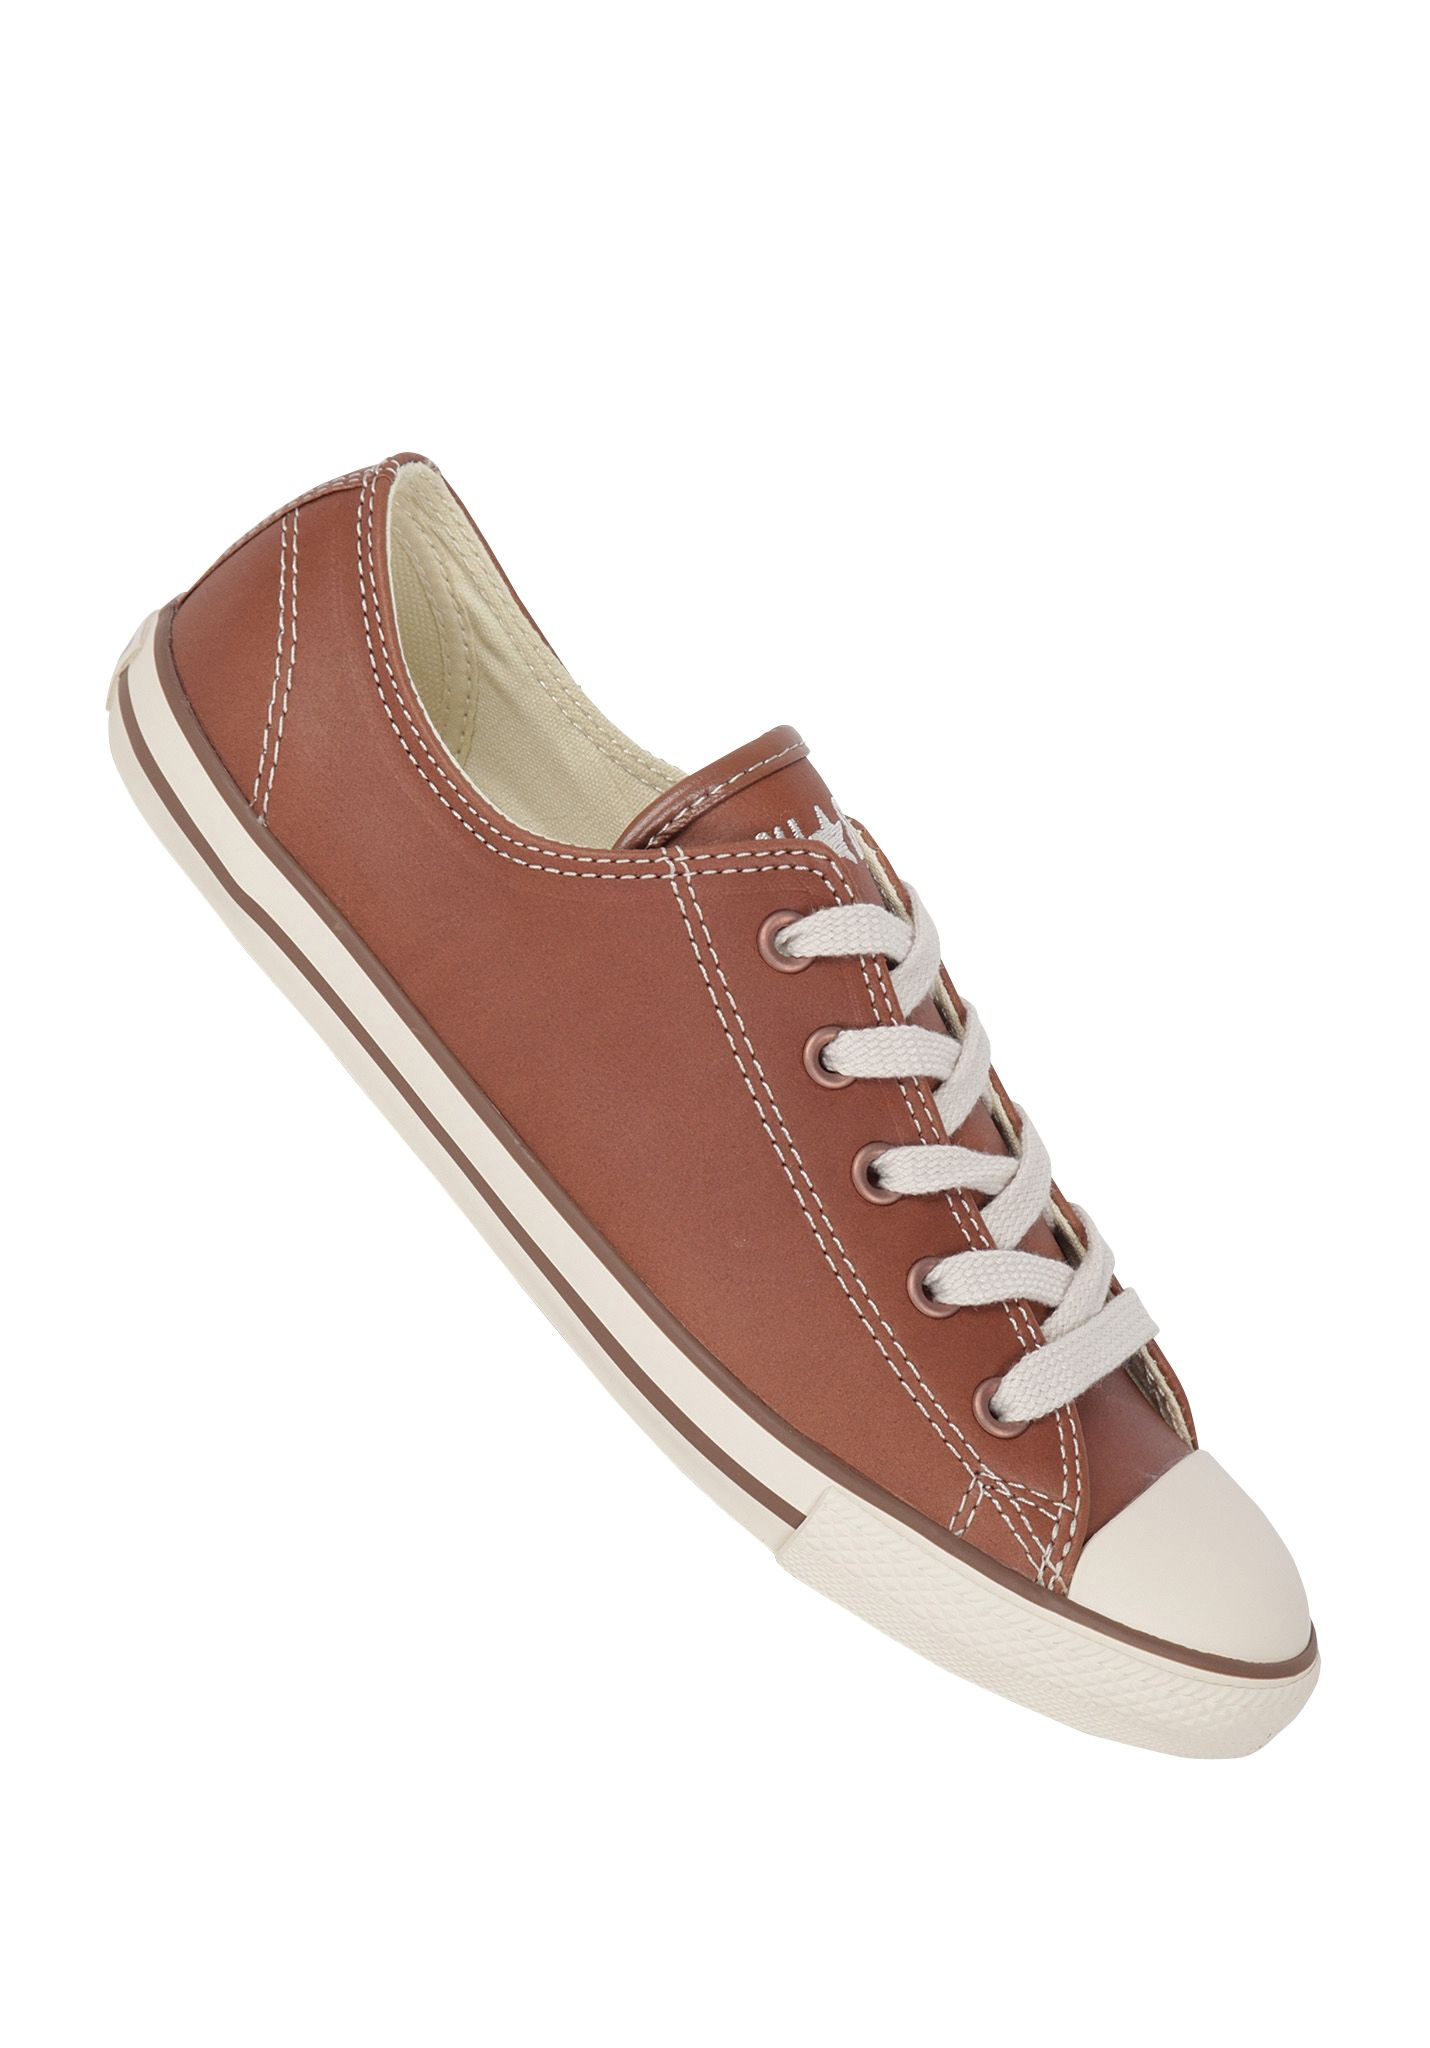 Converse Chuck Taylor All Star Dainty Ox Leather - Sneakers for Women -  Brown - Planet Sports 807e027b5f